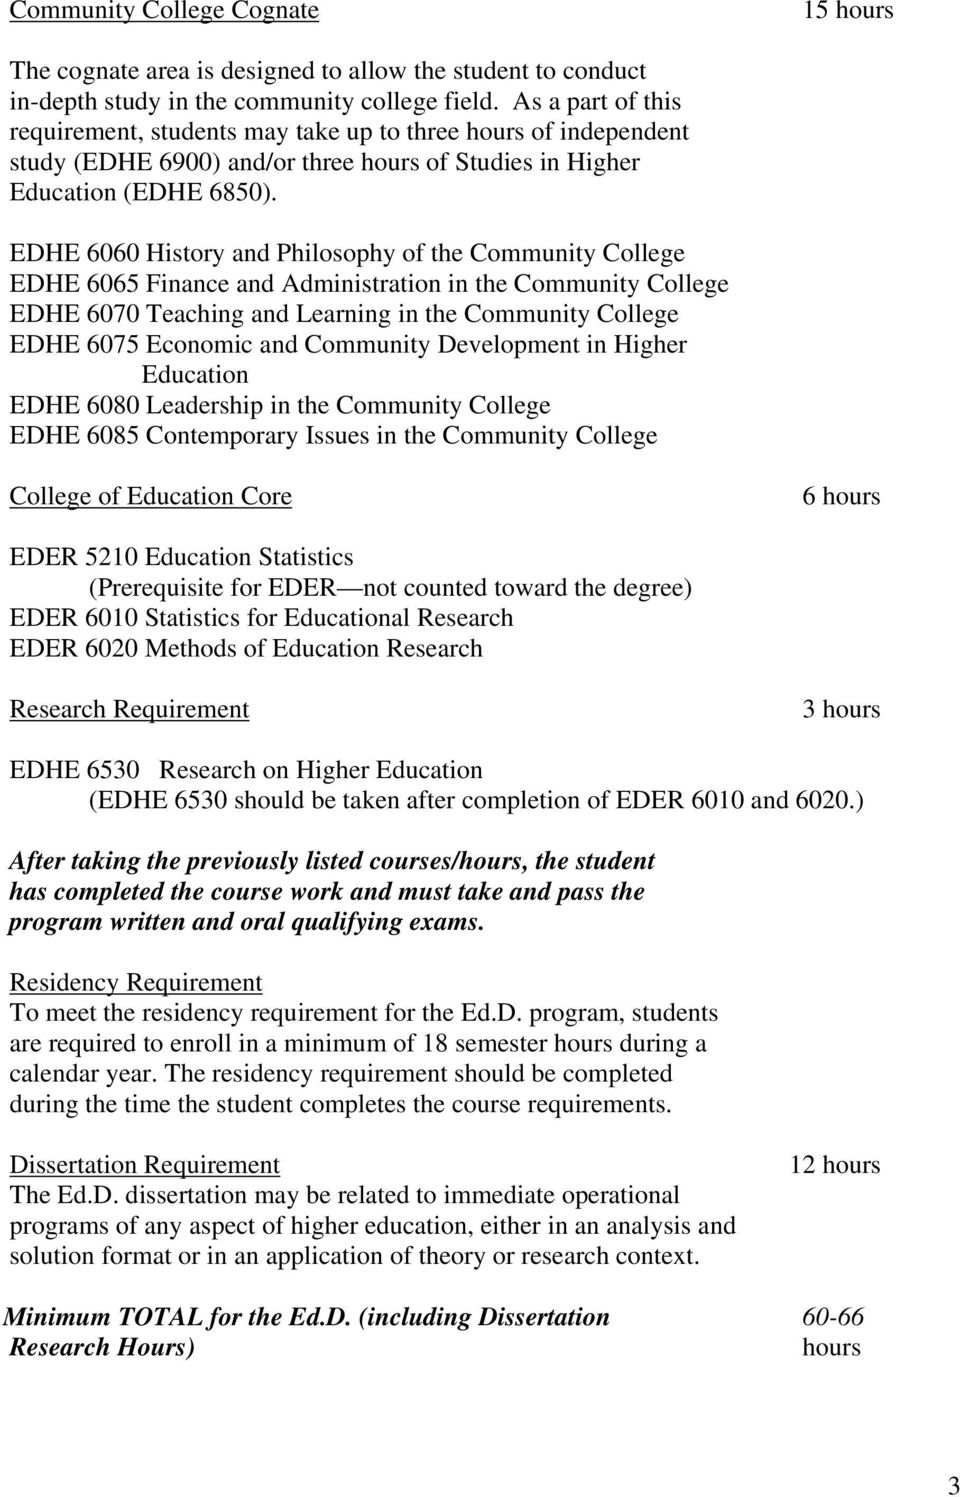 EDHE 6060 History and Philosophy of the Community College EDHE 6065 Finance and Administration in the Community College EDHE 6070 Teaching and Learning in the Community College EDHE 6075 Economic and